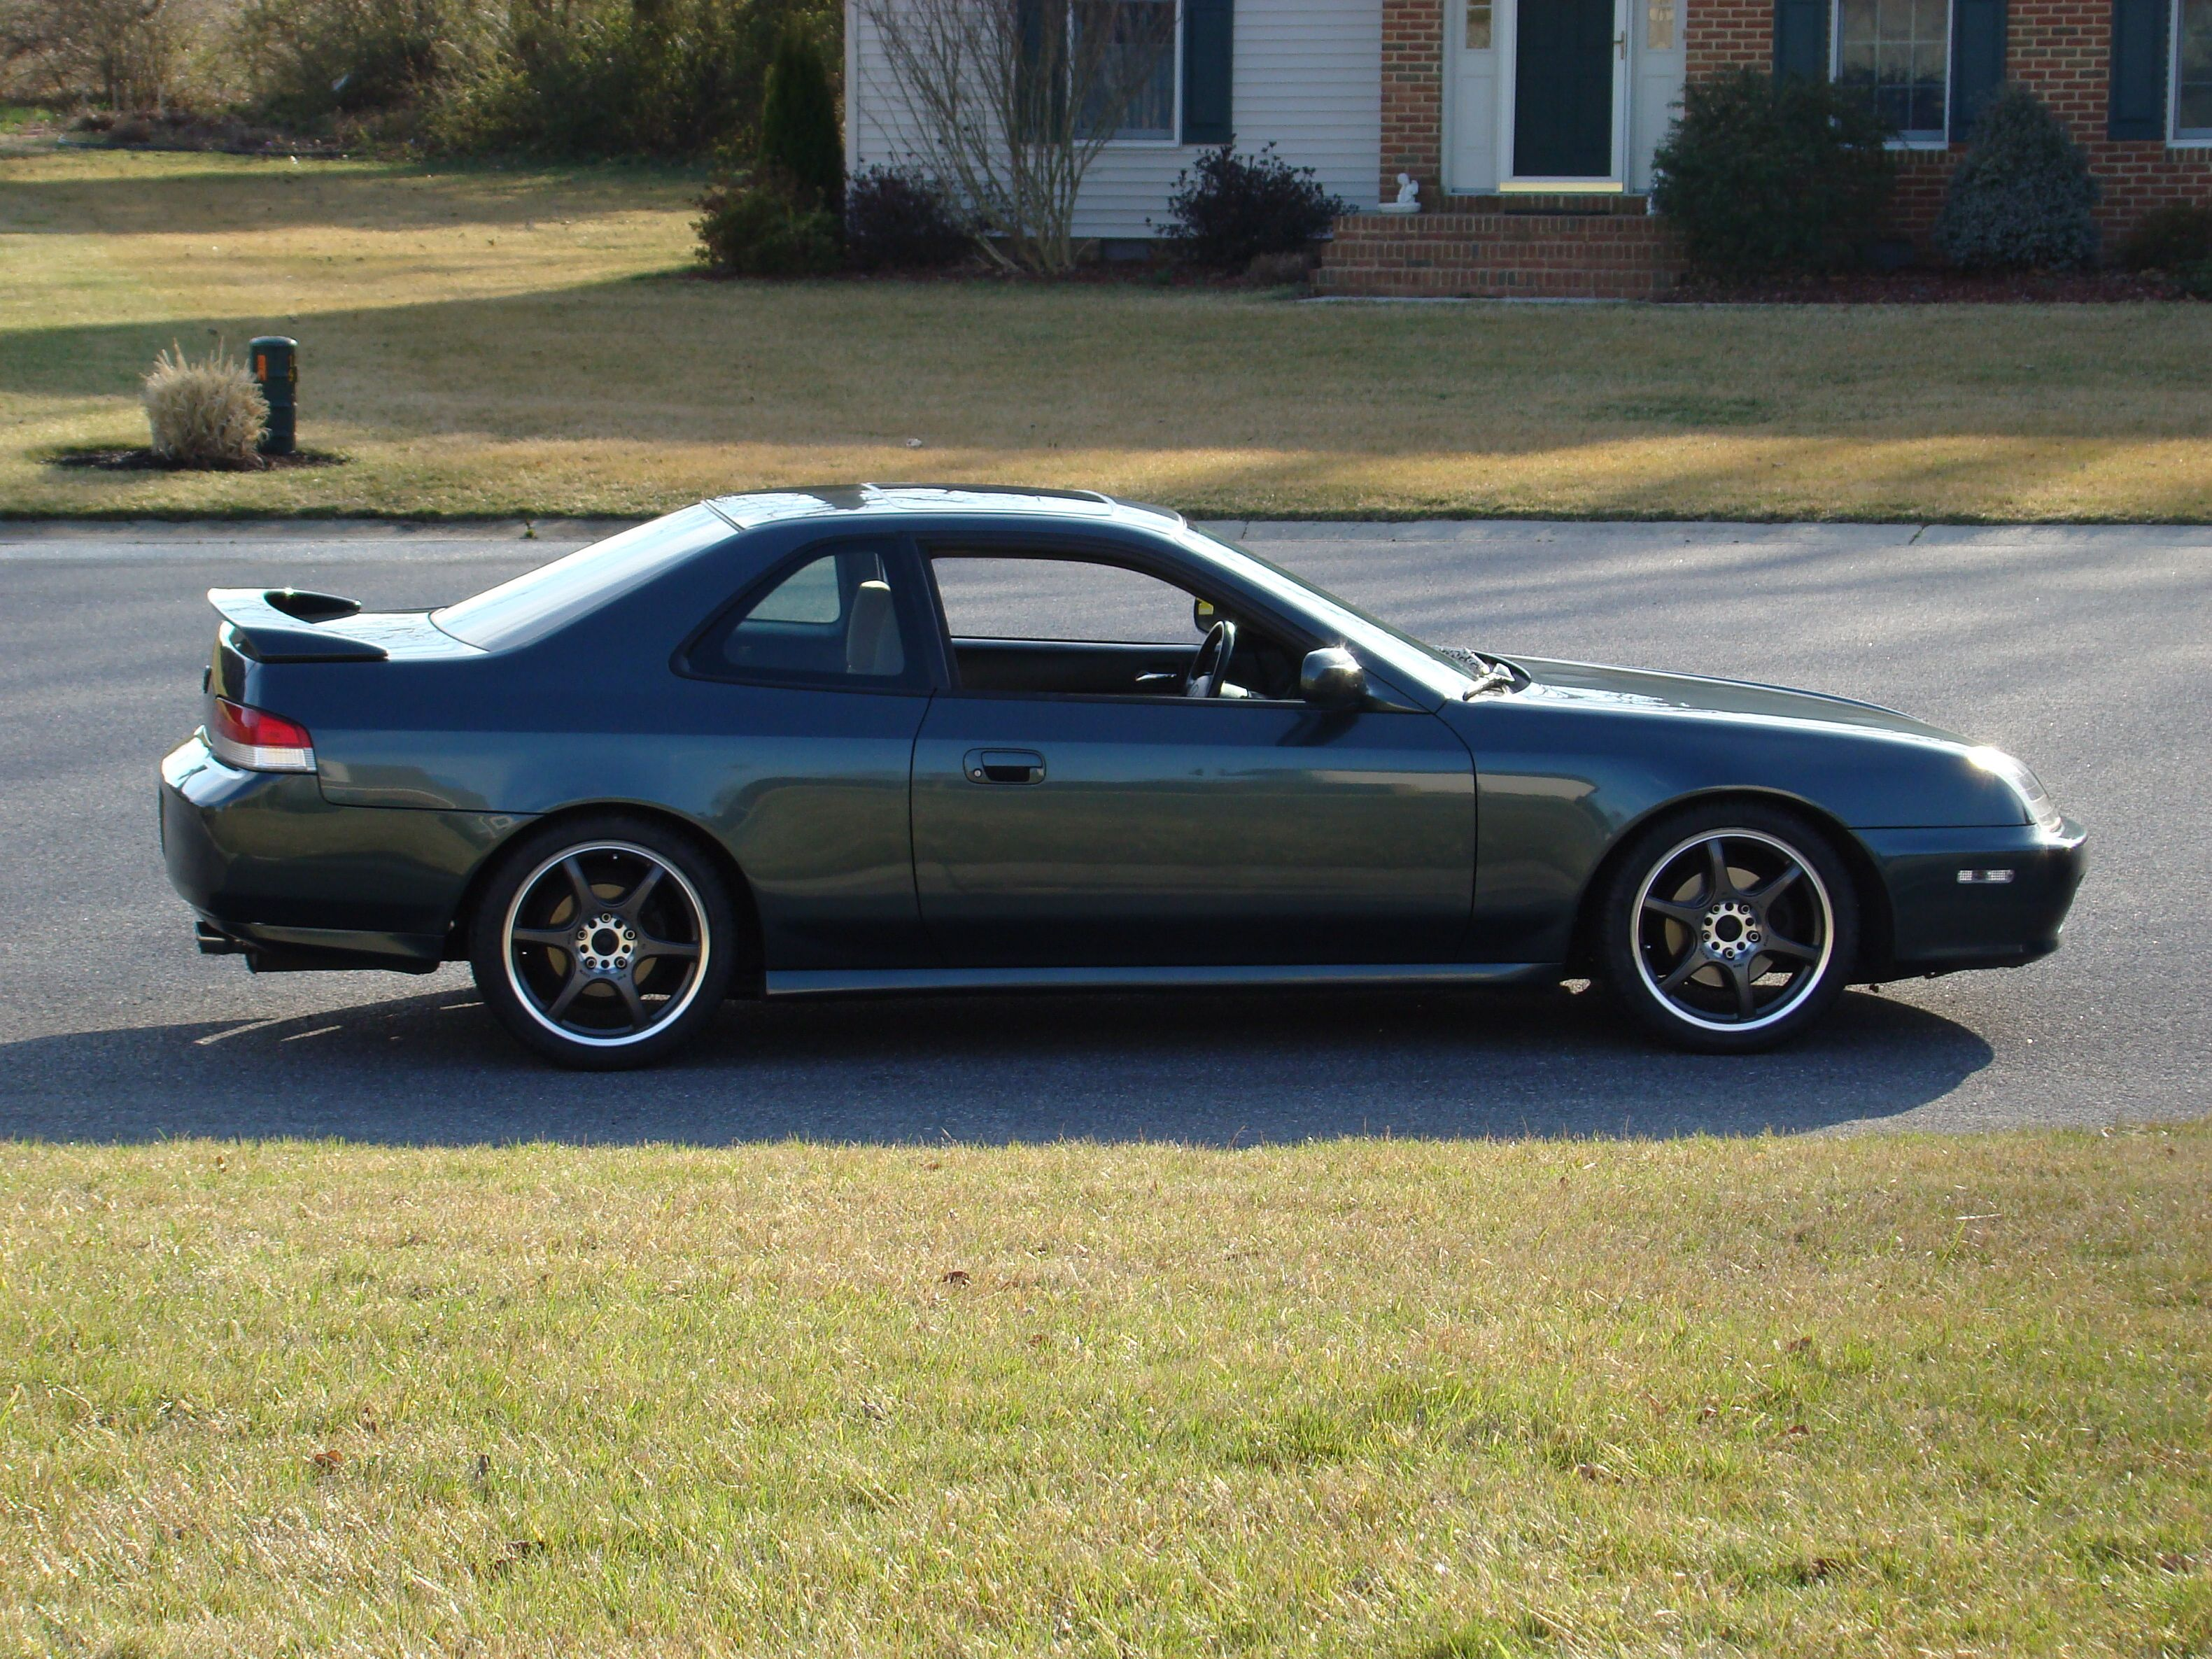 1997 honda prelude information and photos zombiedrive. Black Bedroom Furniture Sets. Home Design Ideas